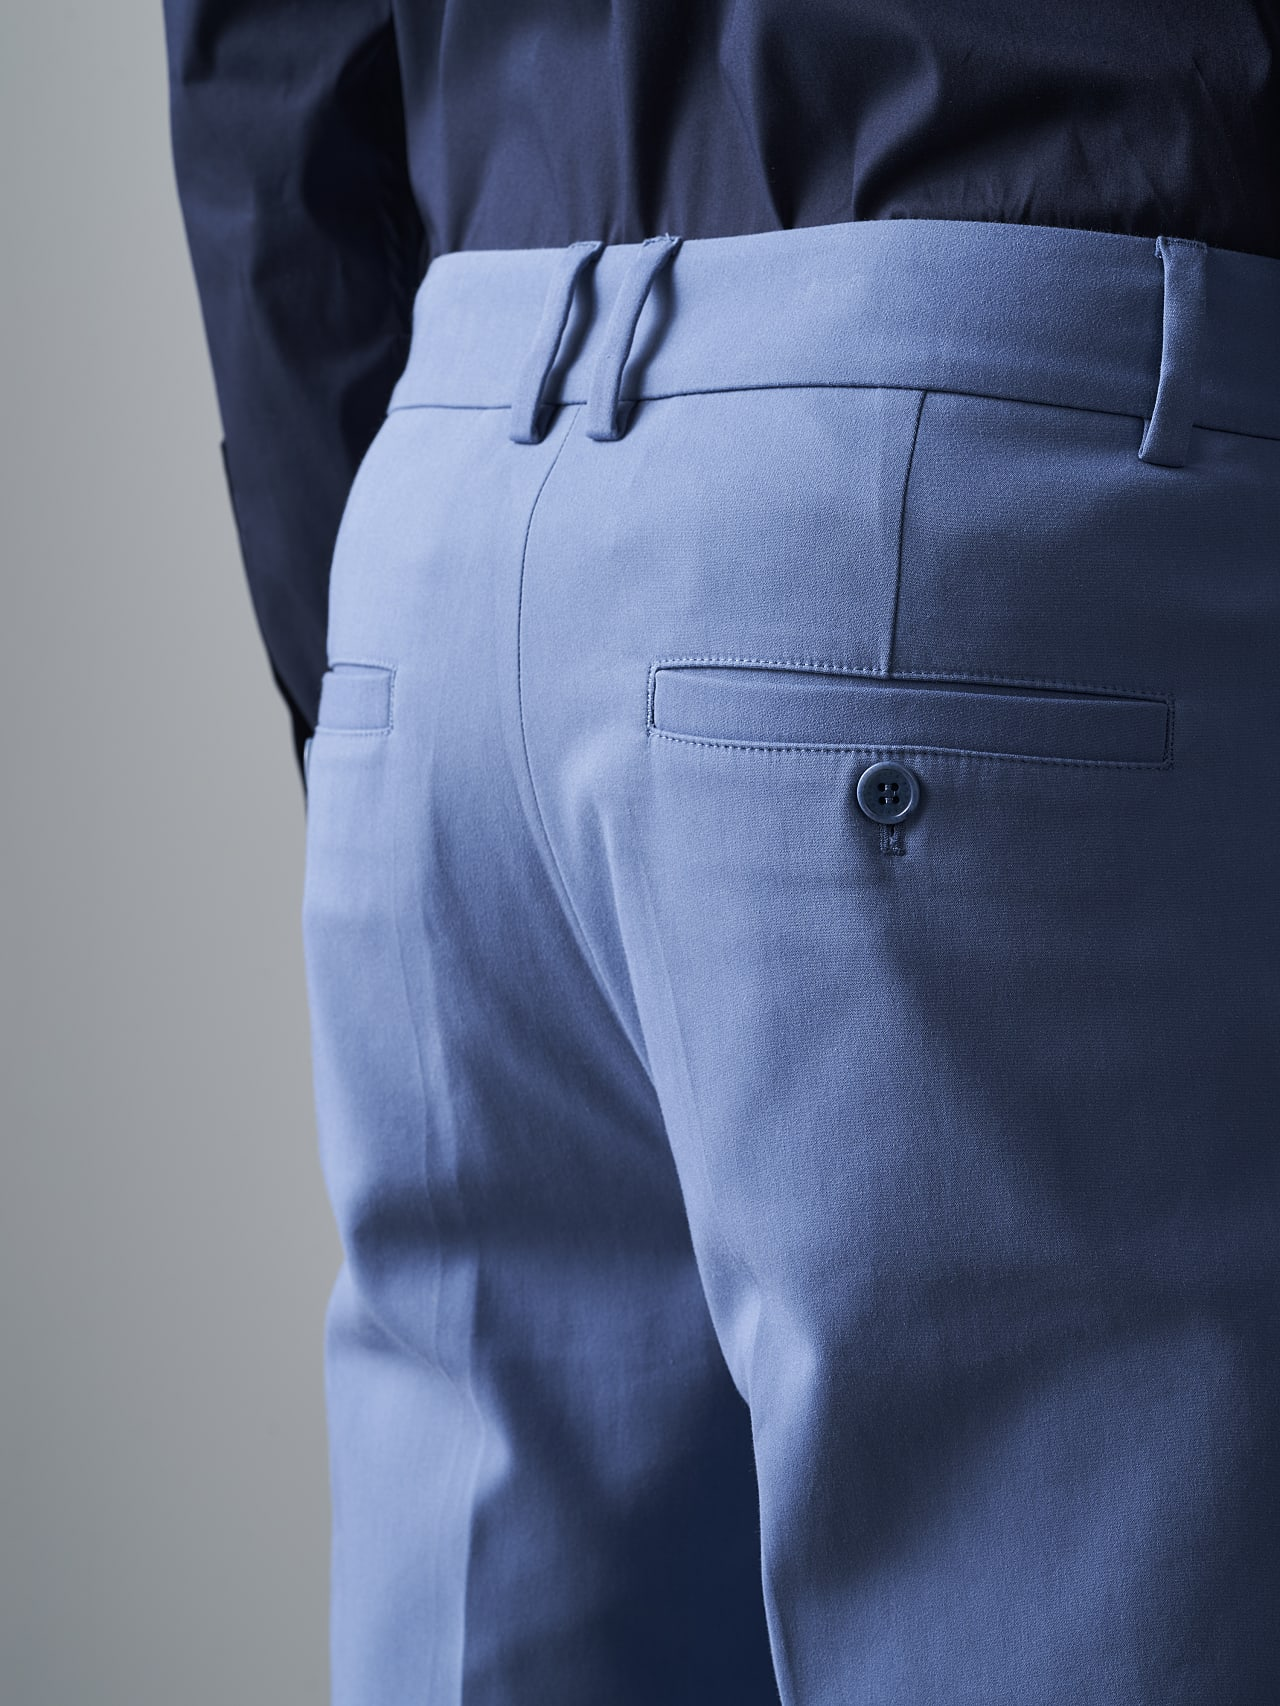 PELAN V1.Y5.02 Tapered Pants with Pleats light blue Extra Alpha Tauri